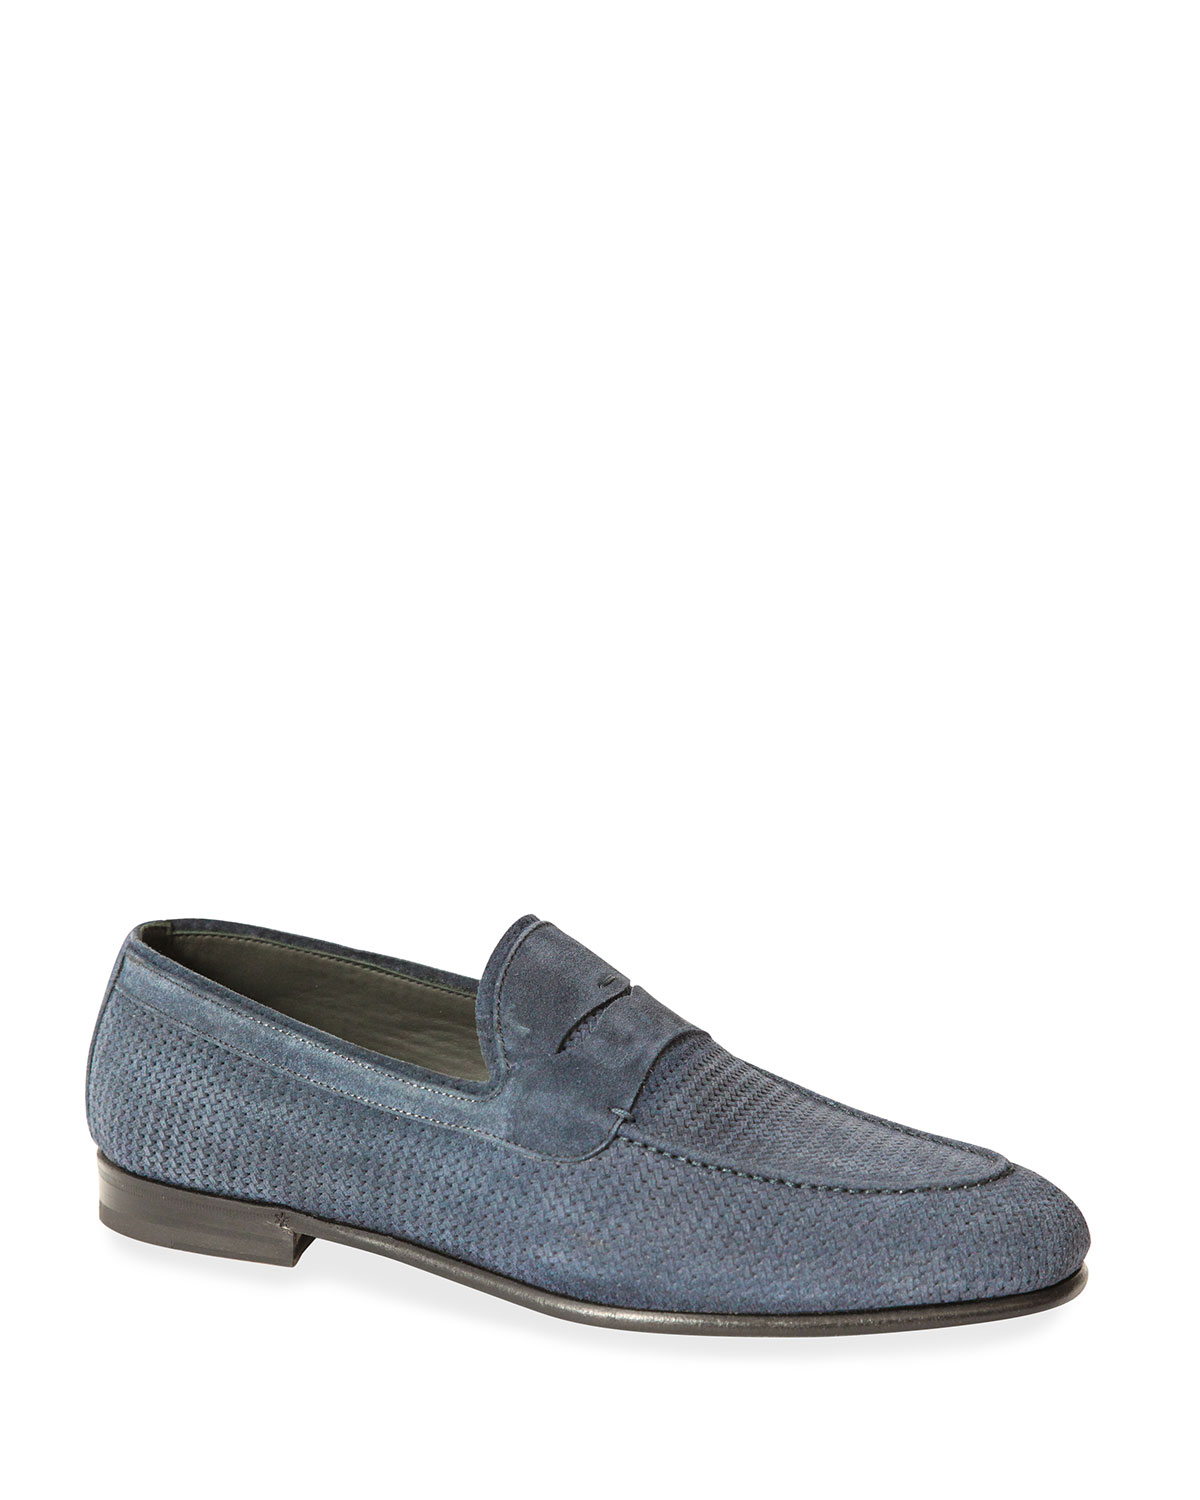 Men's Woven Mix-Leather Penny Loafers